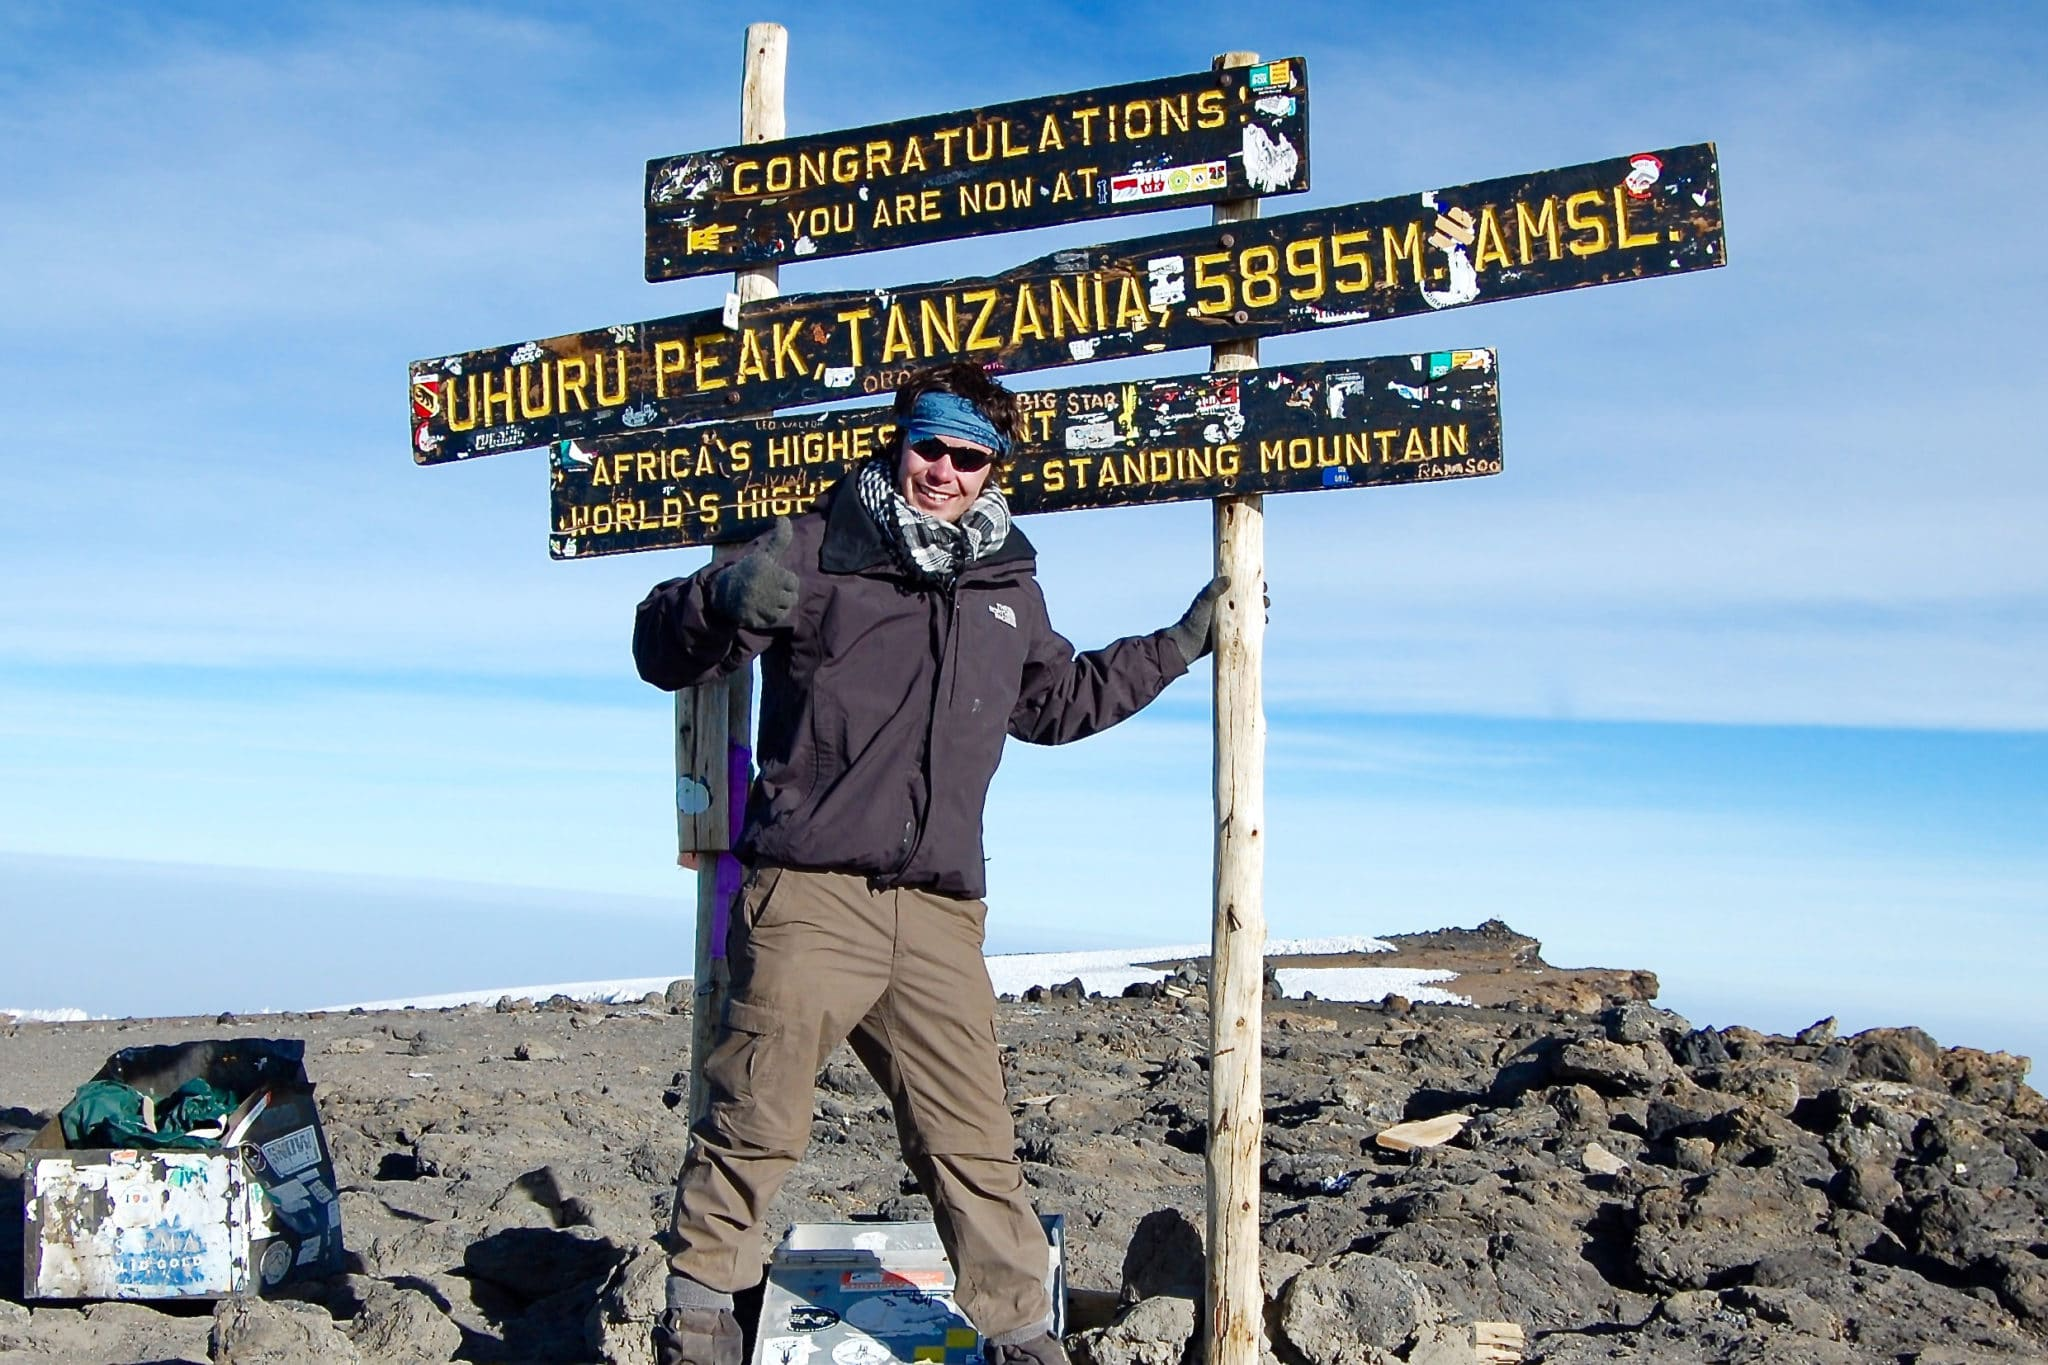 Peter on the summit of Mount Kilimanjaro in Tanzania